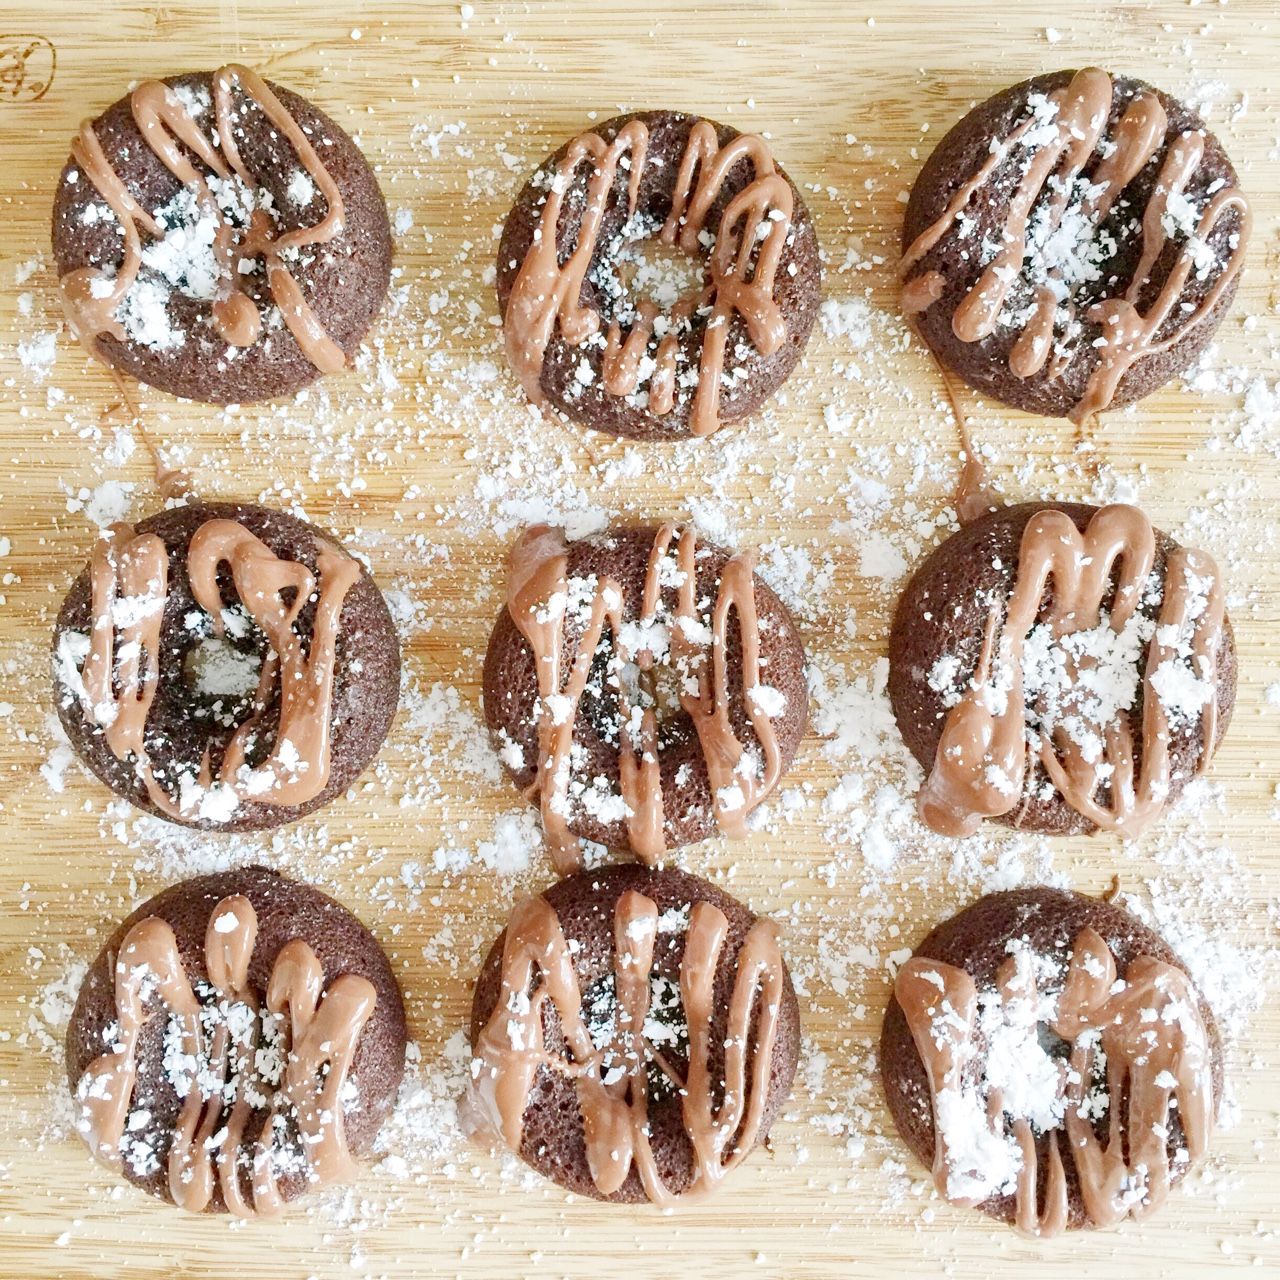 chocolate coconut flour donuts.